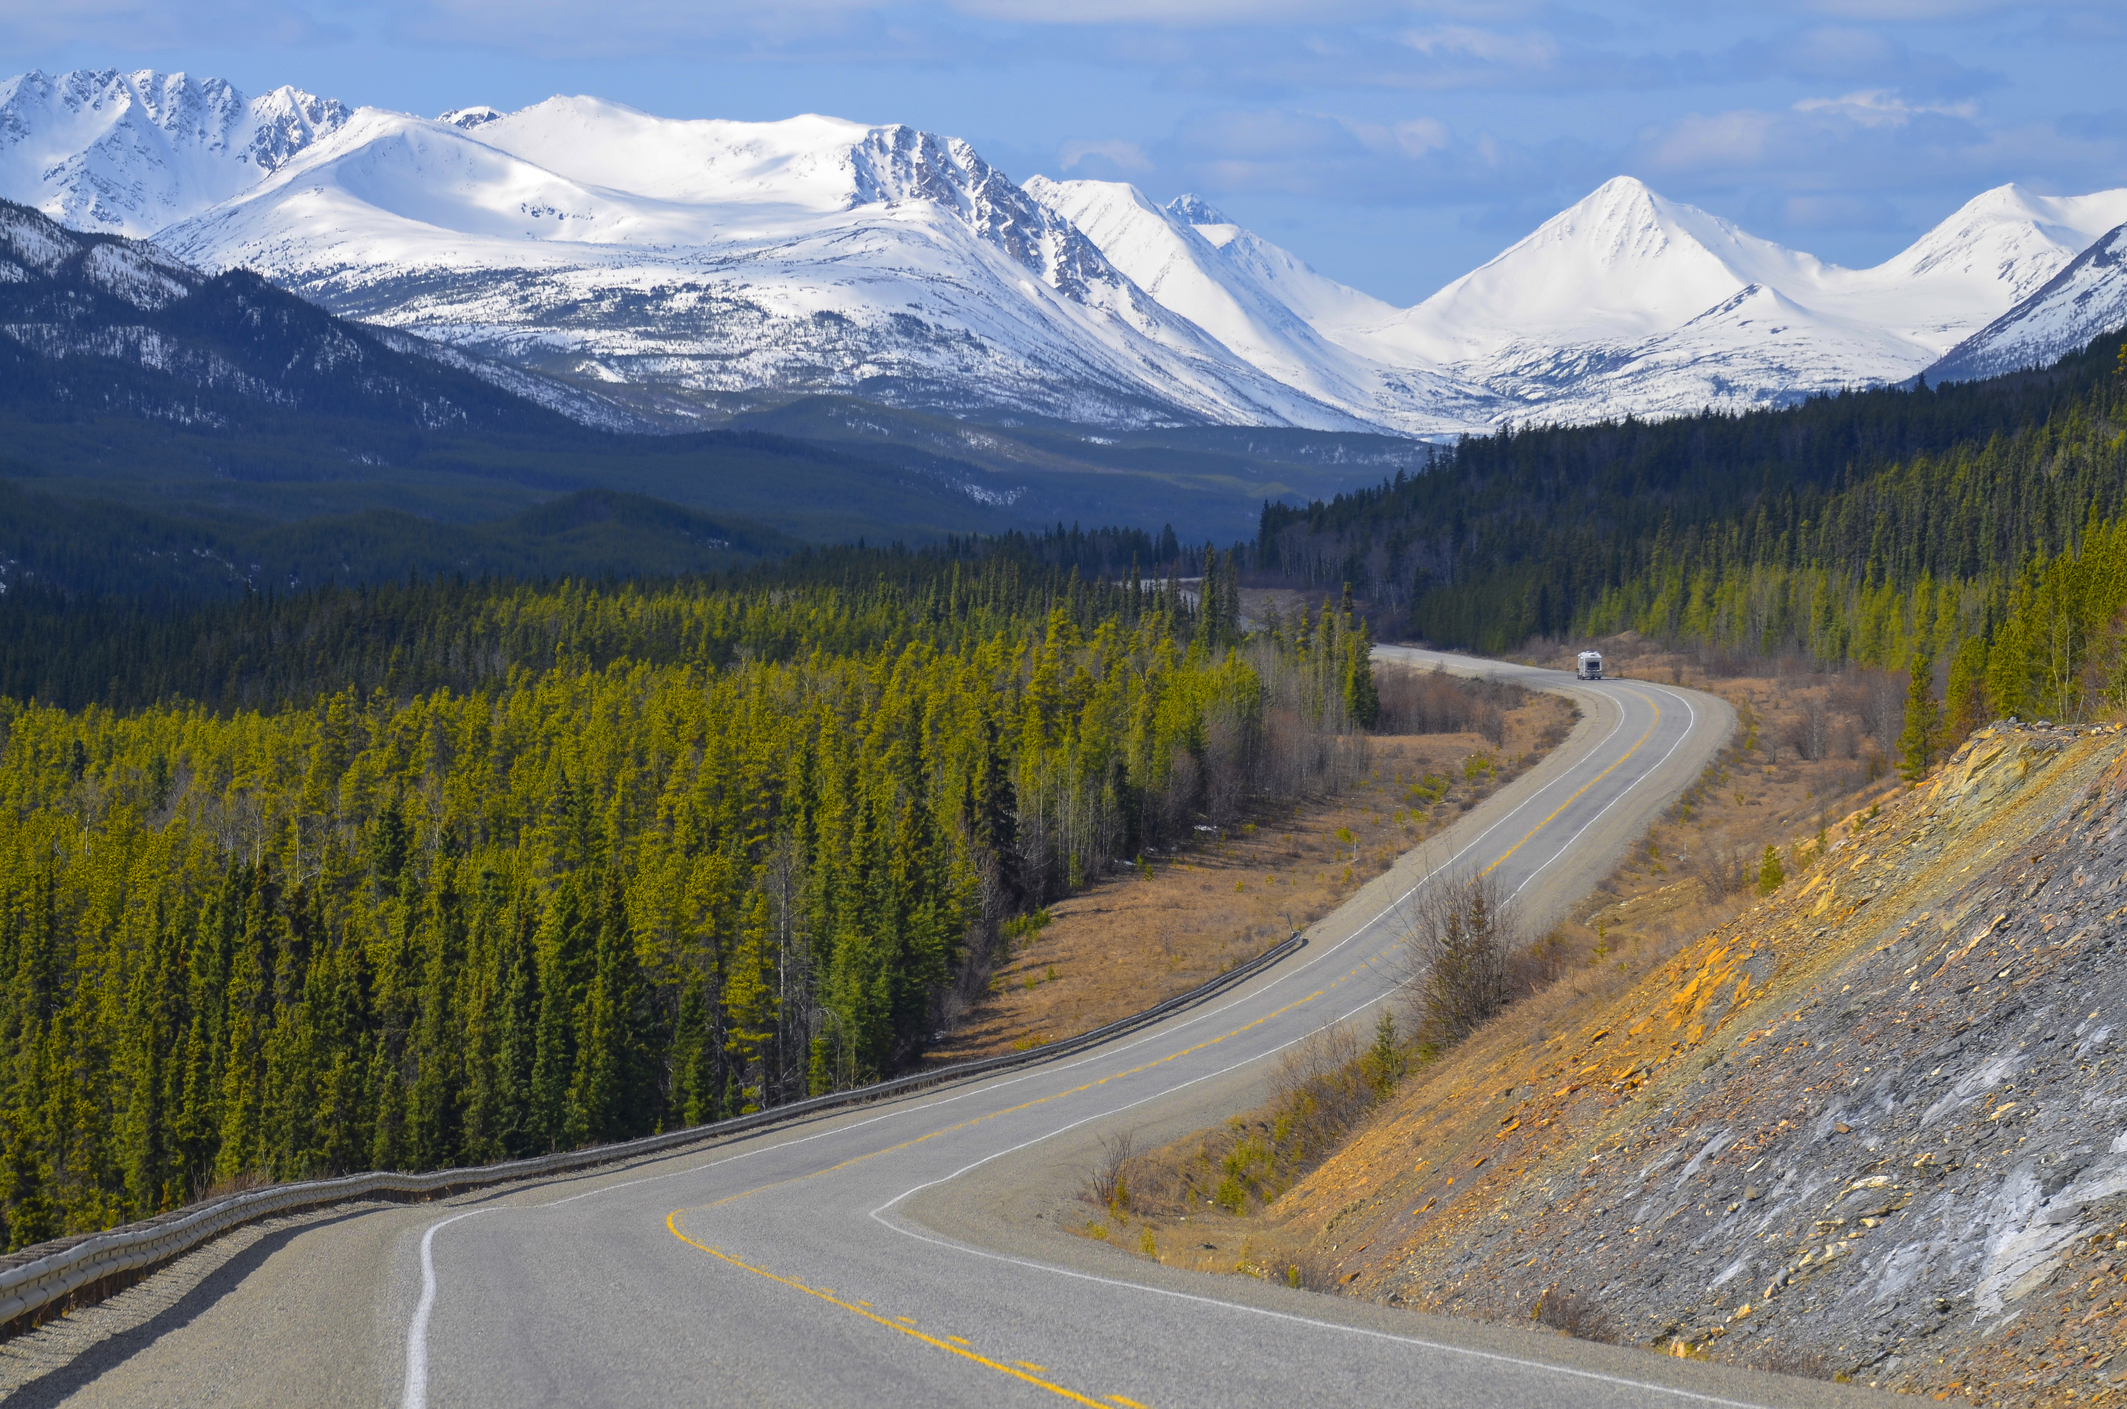 Scenic view of the Alaska Highway in the Yukon Territory, Canada